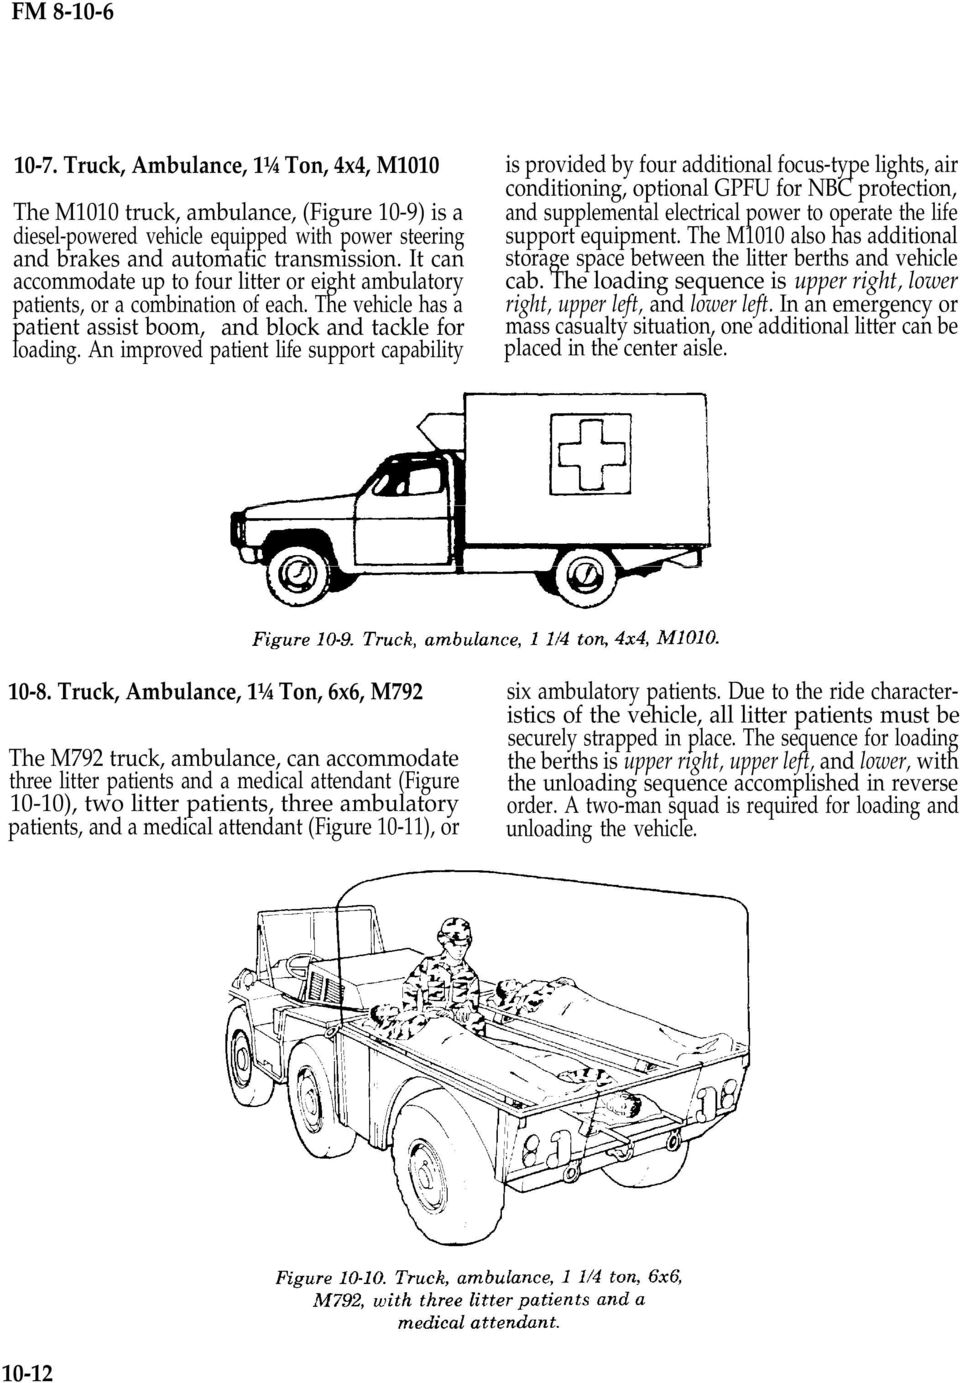 M1010 Ambulance Wiring Diagram Lifted Cucv Hummer Diagrams For Ford Evacuation Platforms Section I Army Ground Ambulances Pdf On